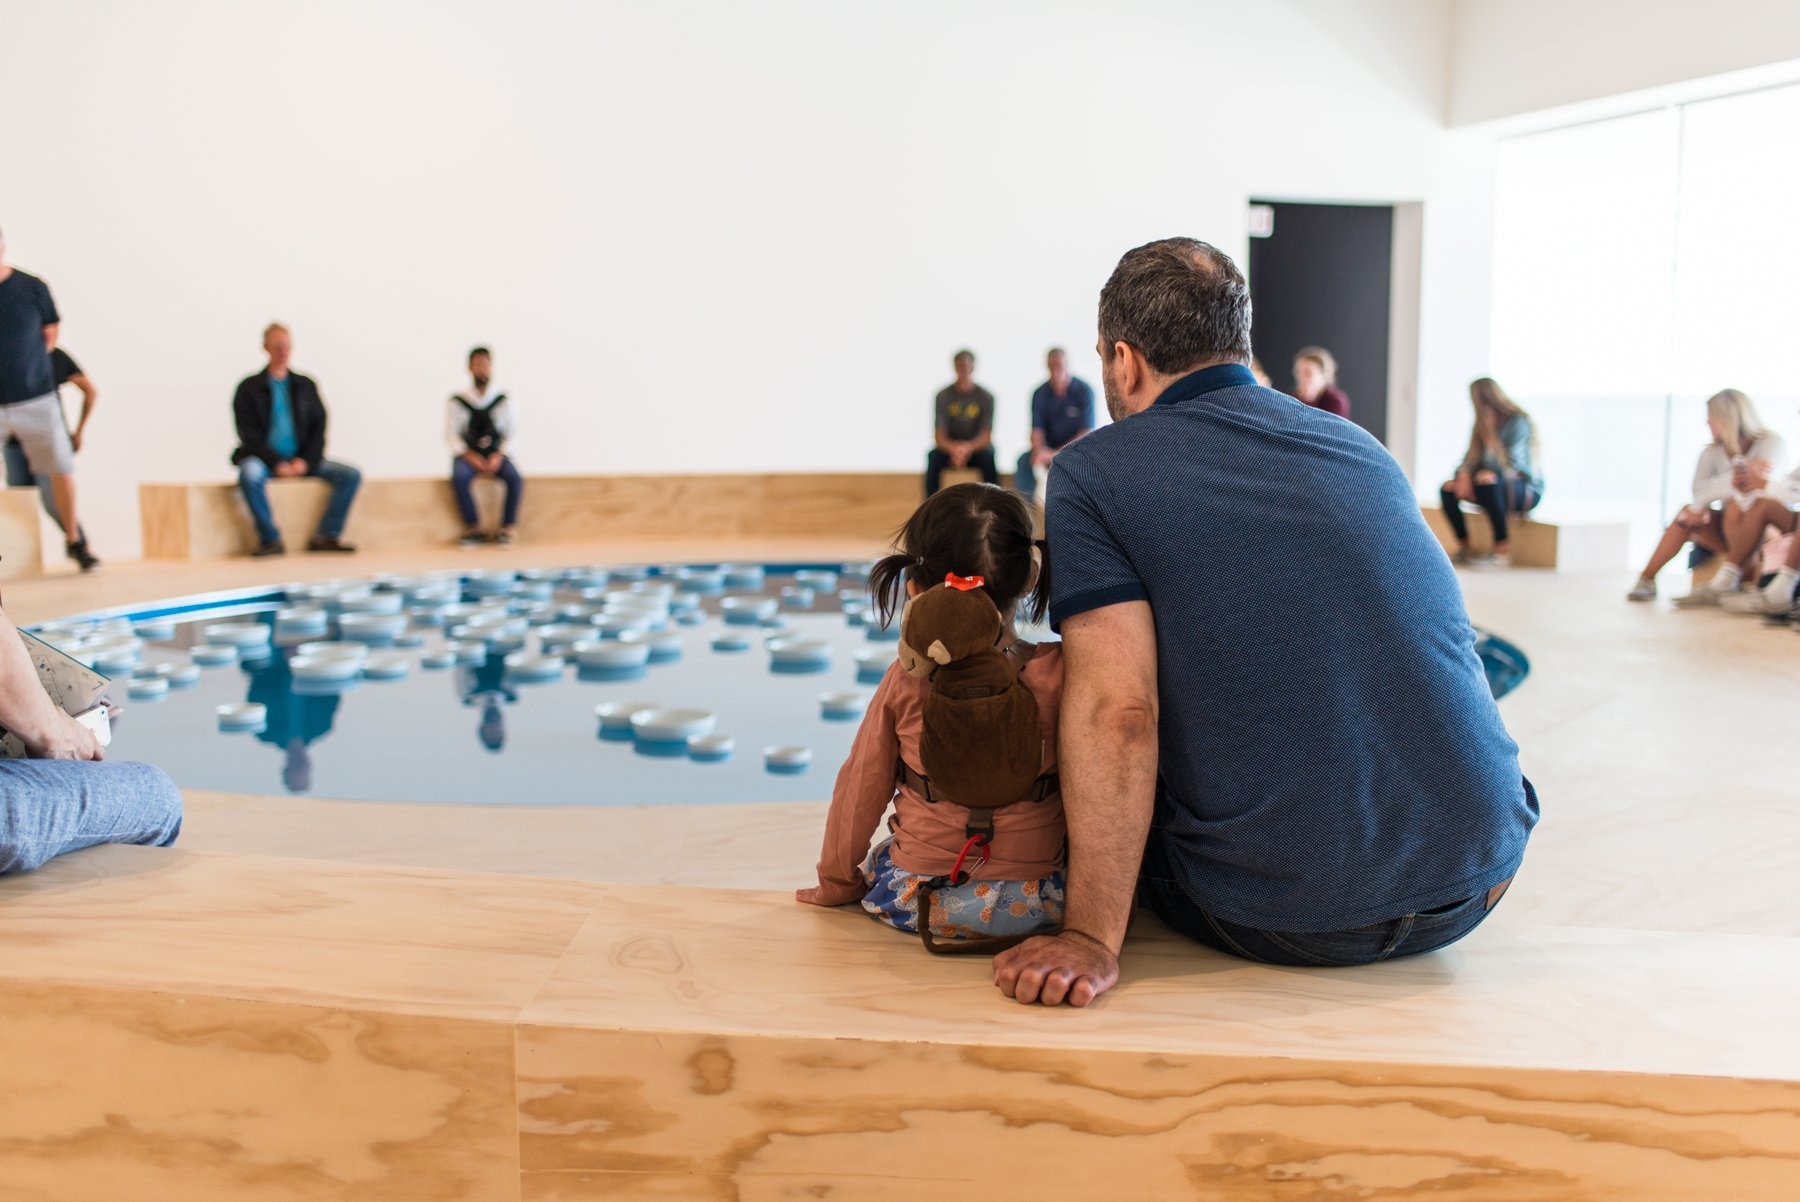 Color photograph of a father and son sitting on the edge of a blue pool of water filled with white bowls, Boursier-Mougenot, Soundtracks